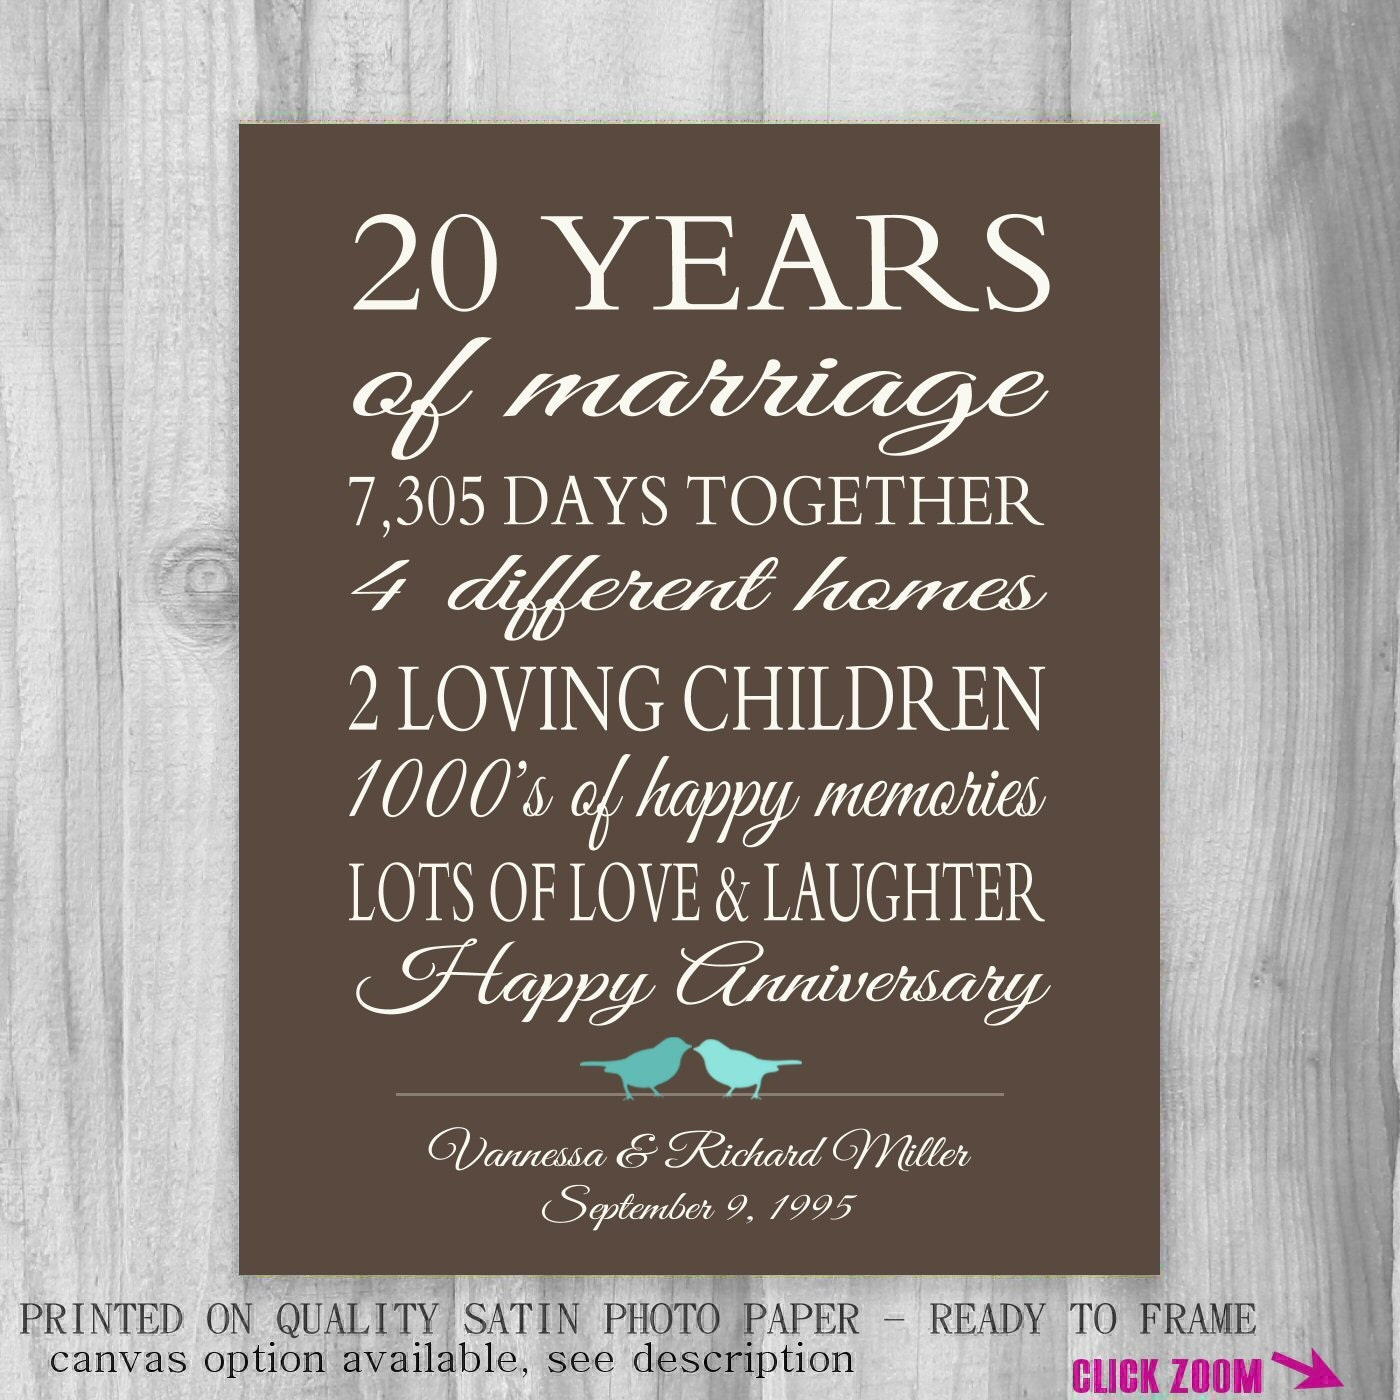 Wedding Gifts By Years Married : 20 Year Anniversary Gift for Parents 20th Anniversary Present